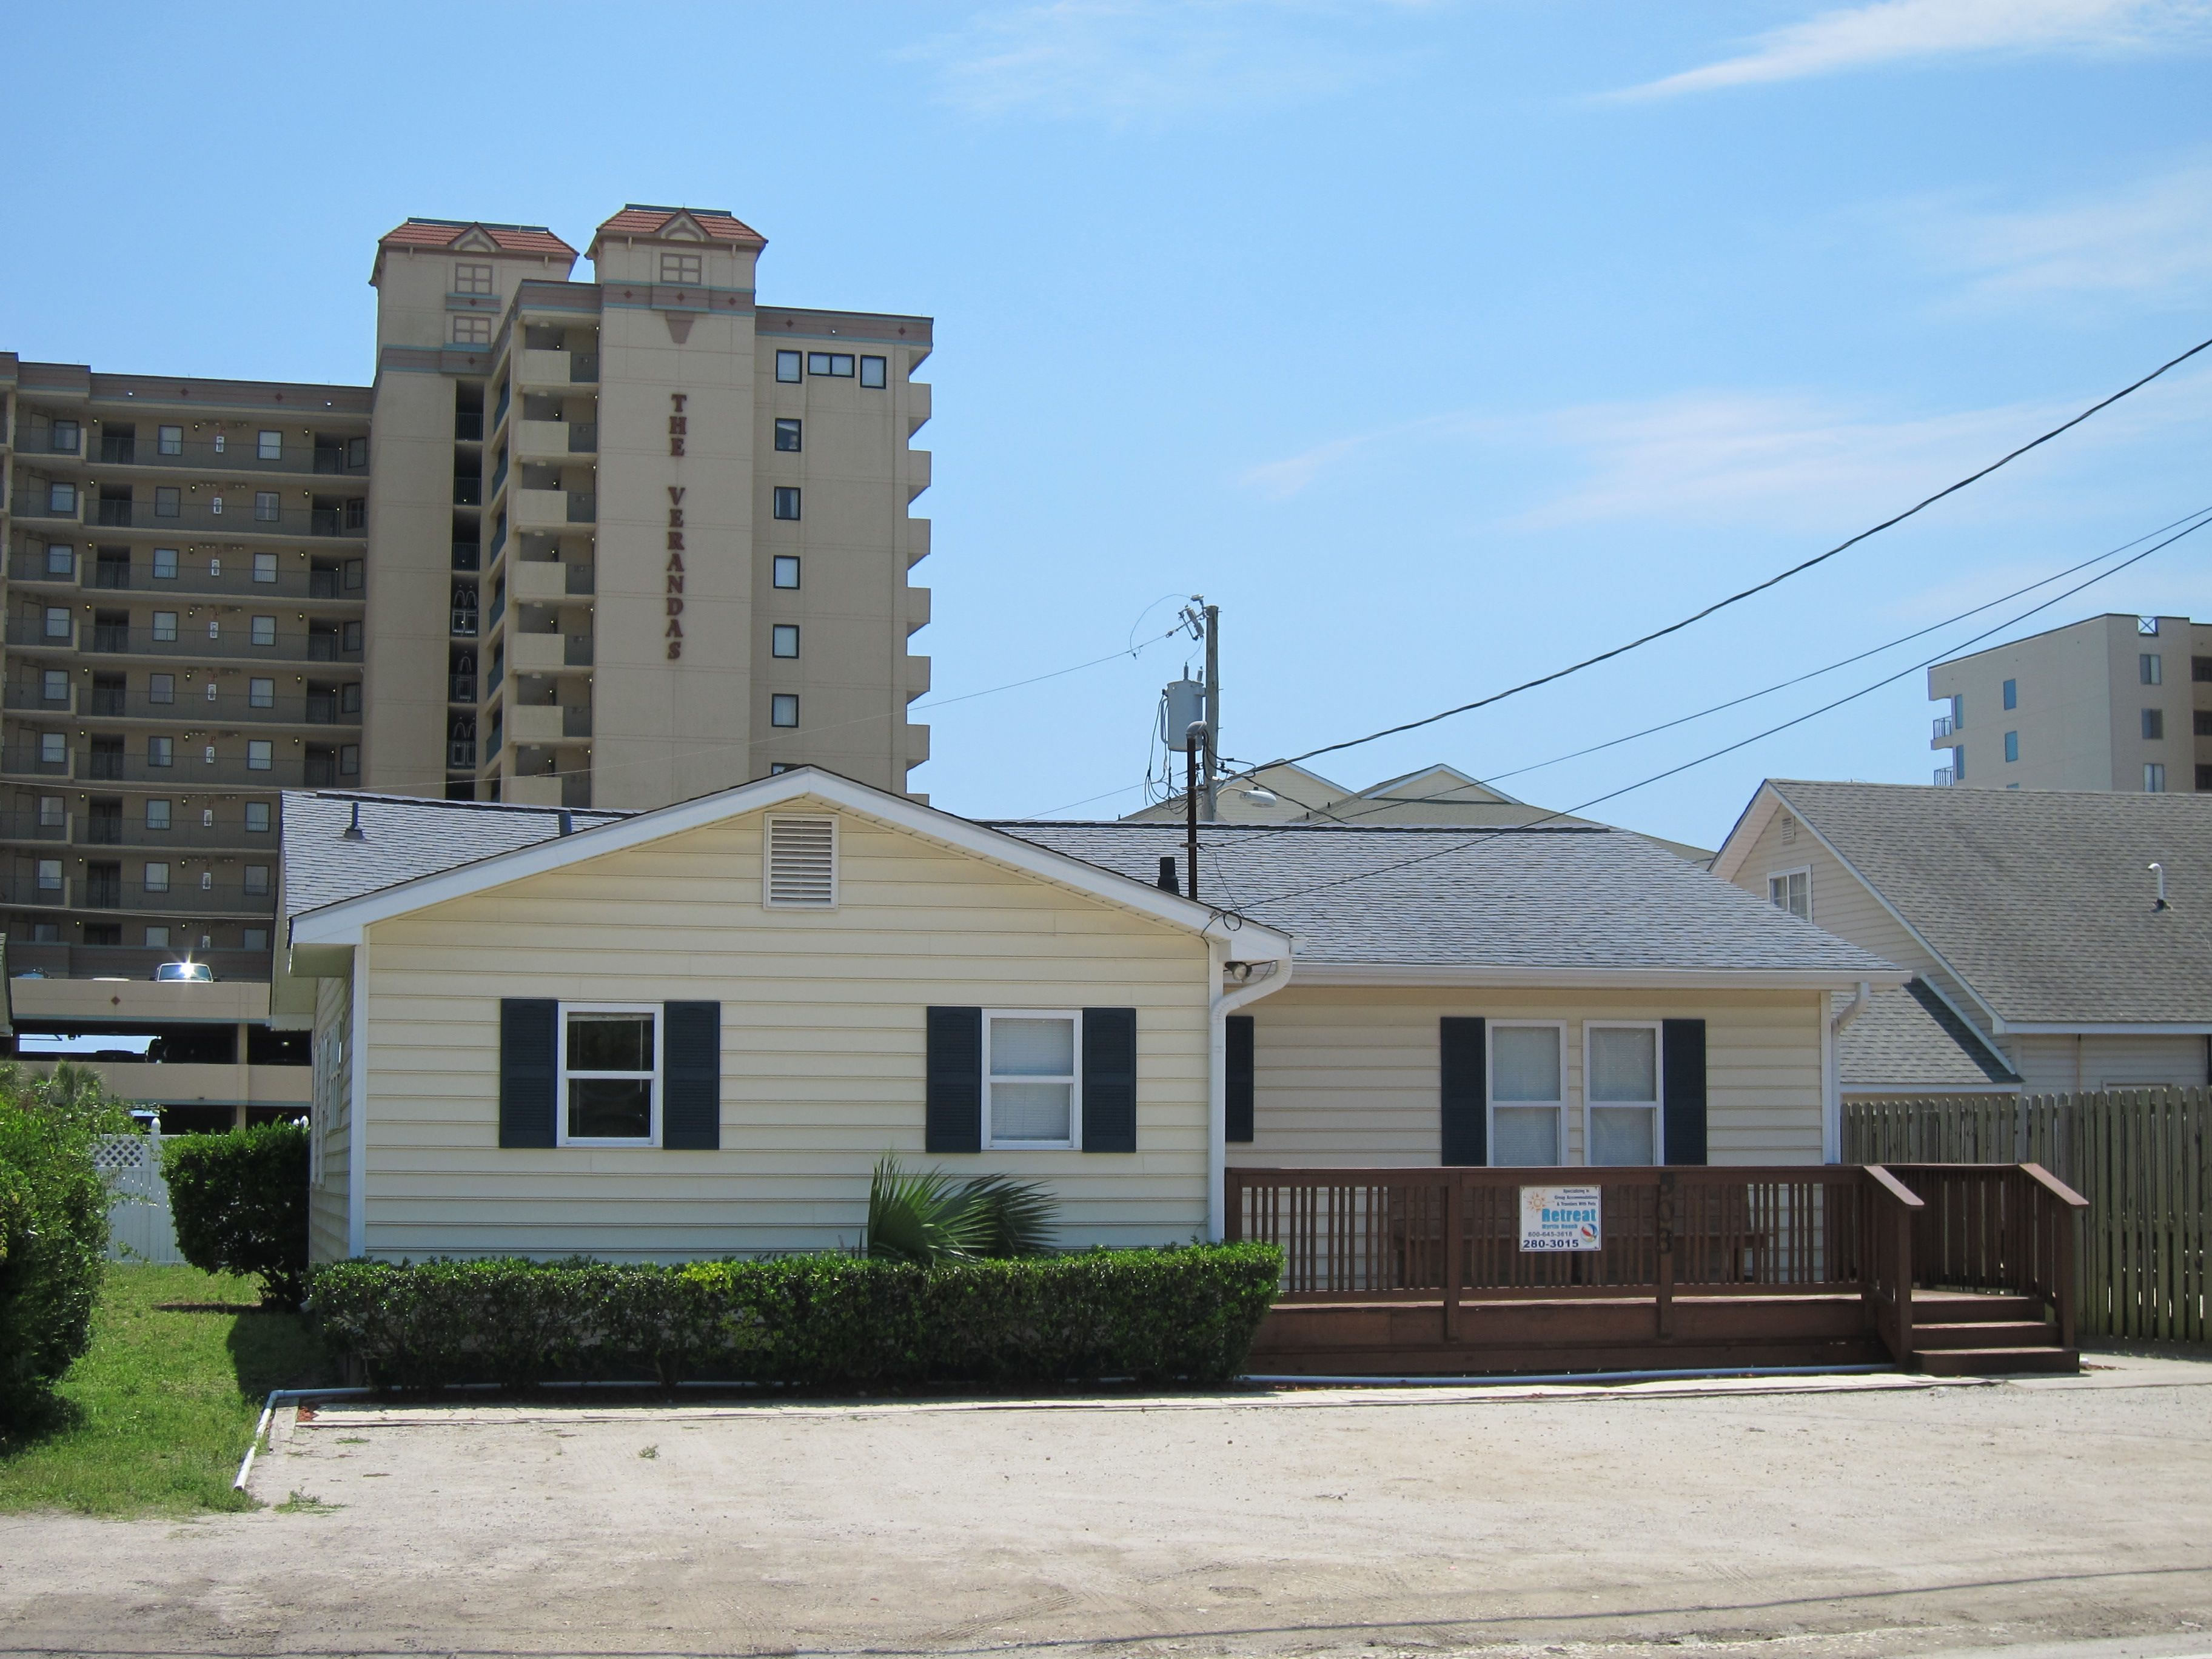 bch holiday inn hotel ihg cottages cottage by sc myrsc express us the broadway en hoteldetail myrtle hotels beach holidayinnexpress